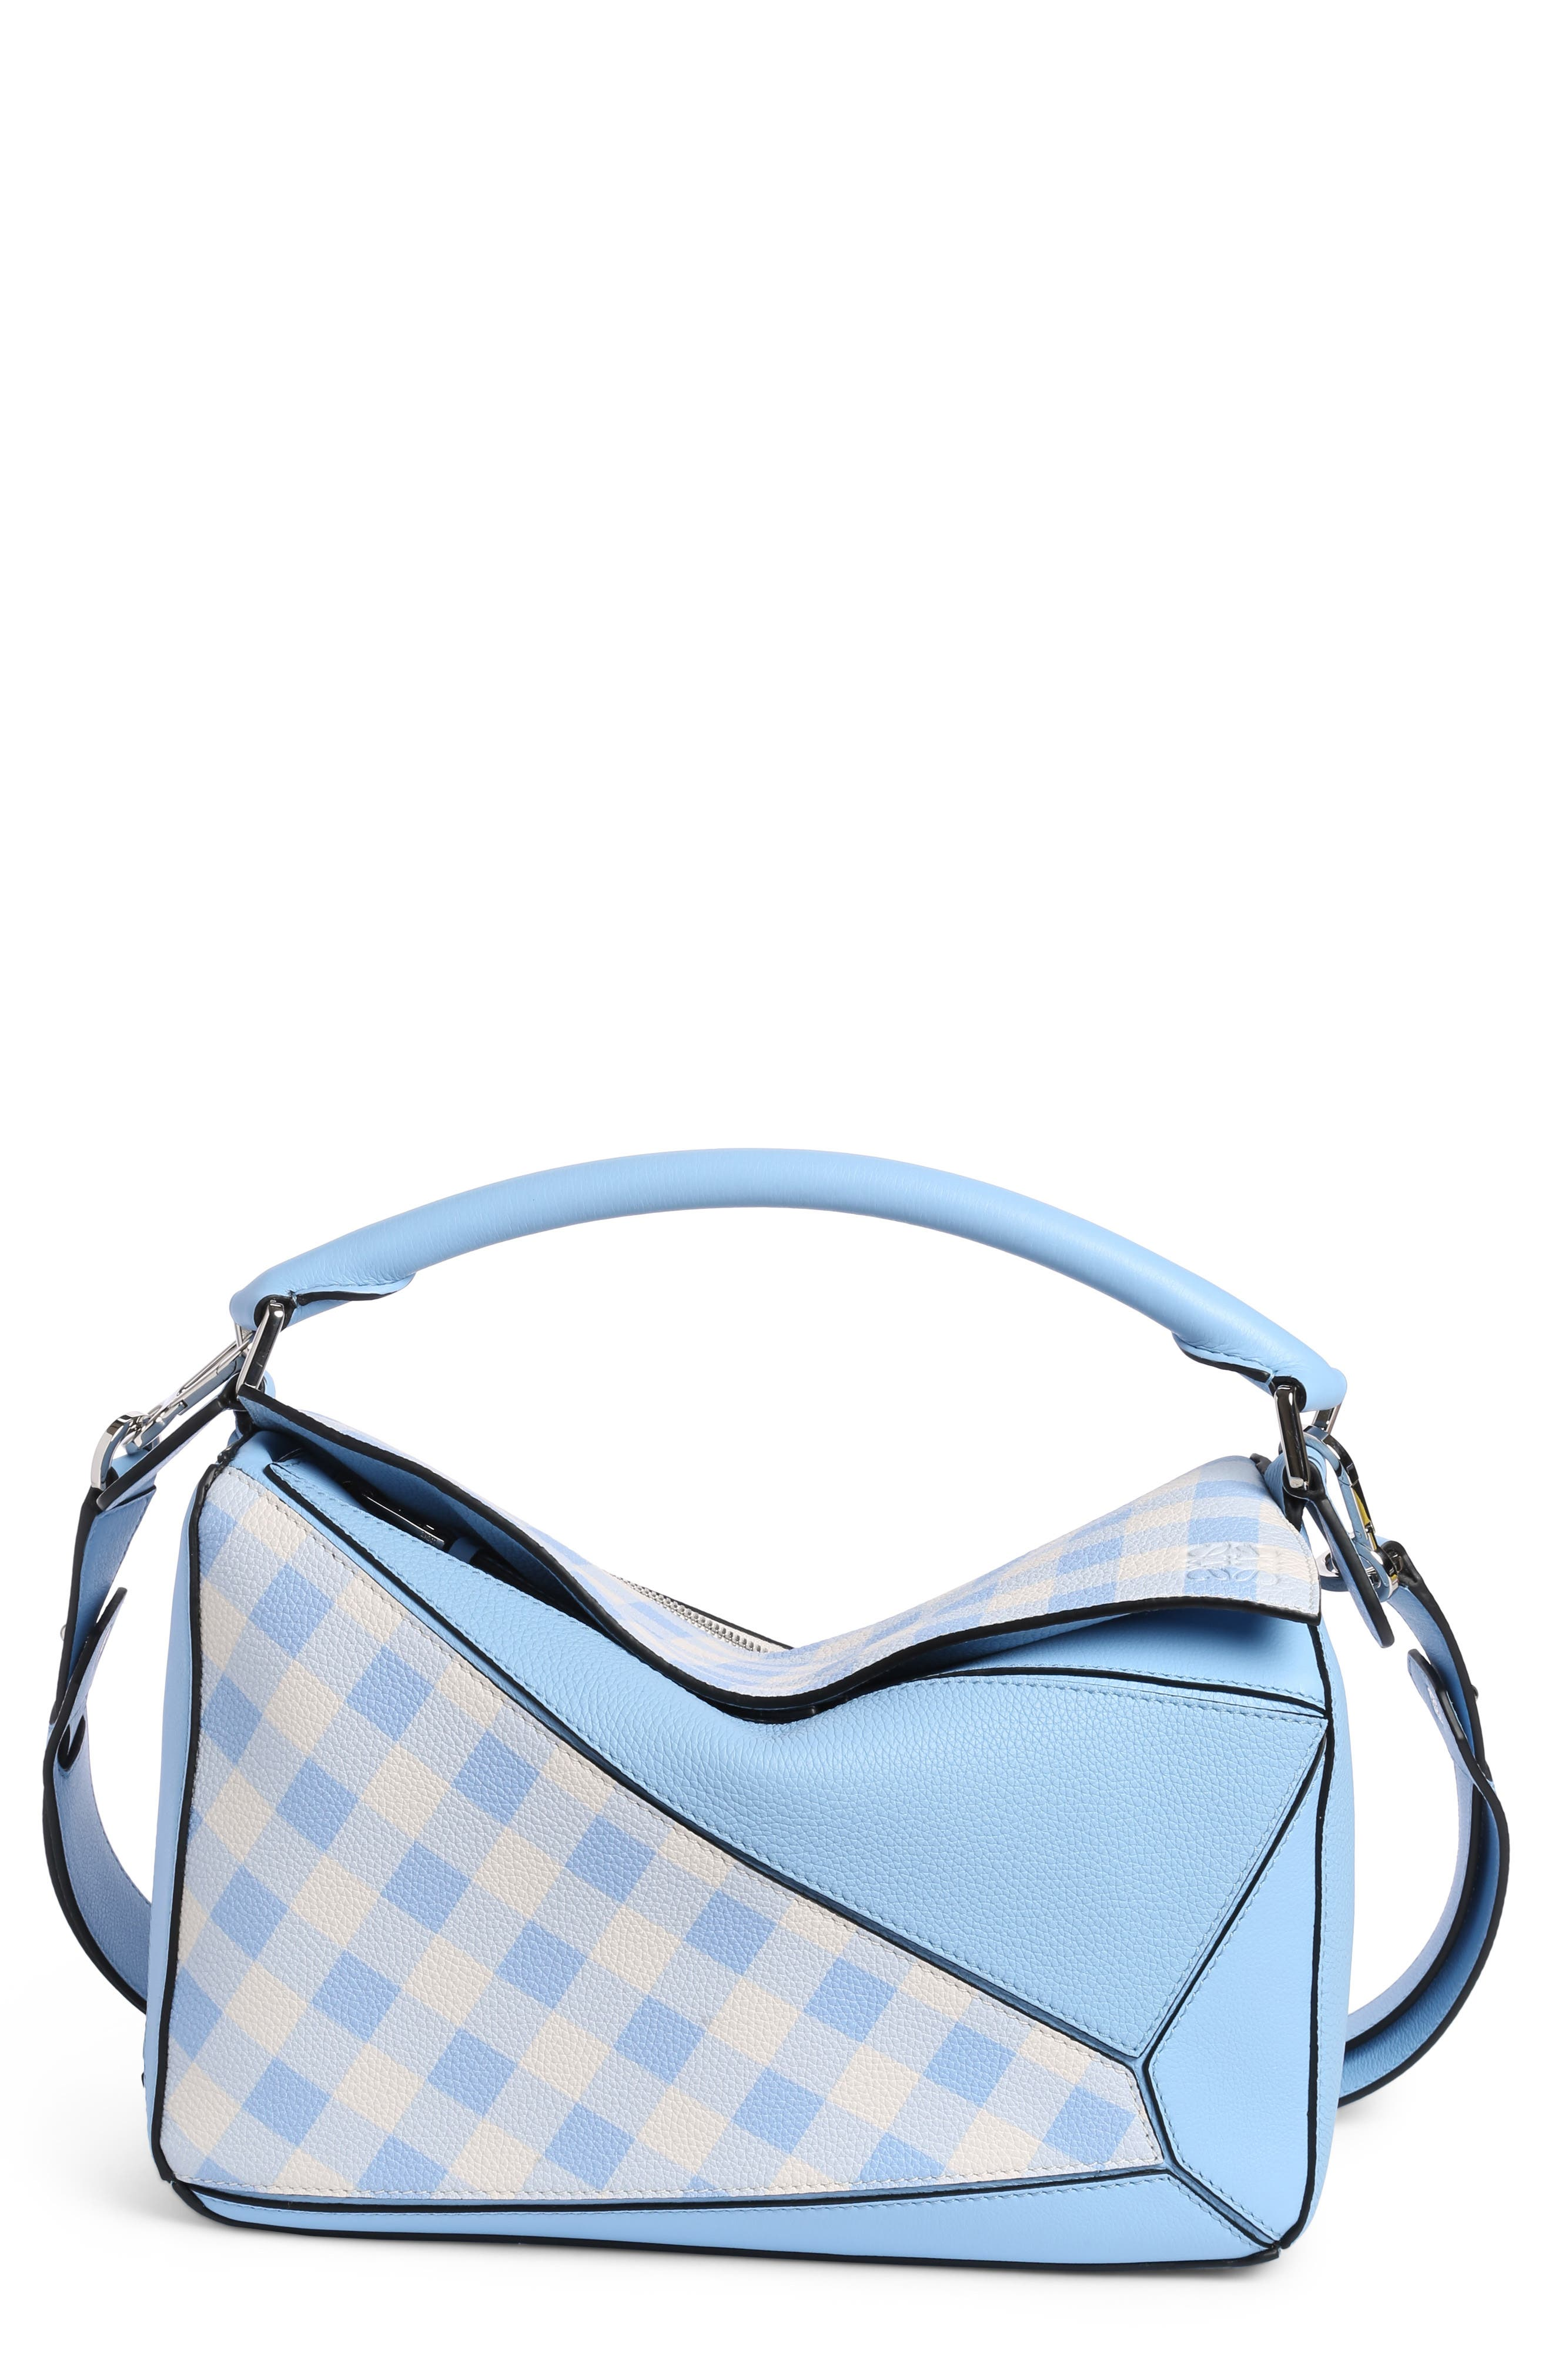 Loewe Puzzle Gingham Calfskin Leather Bag